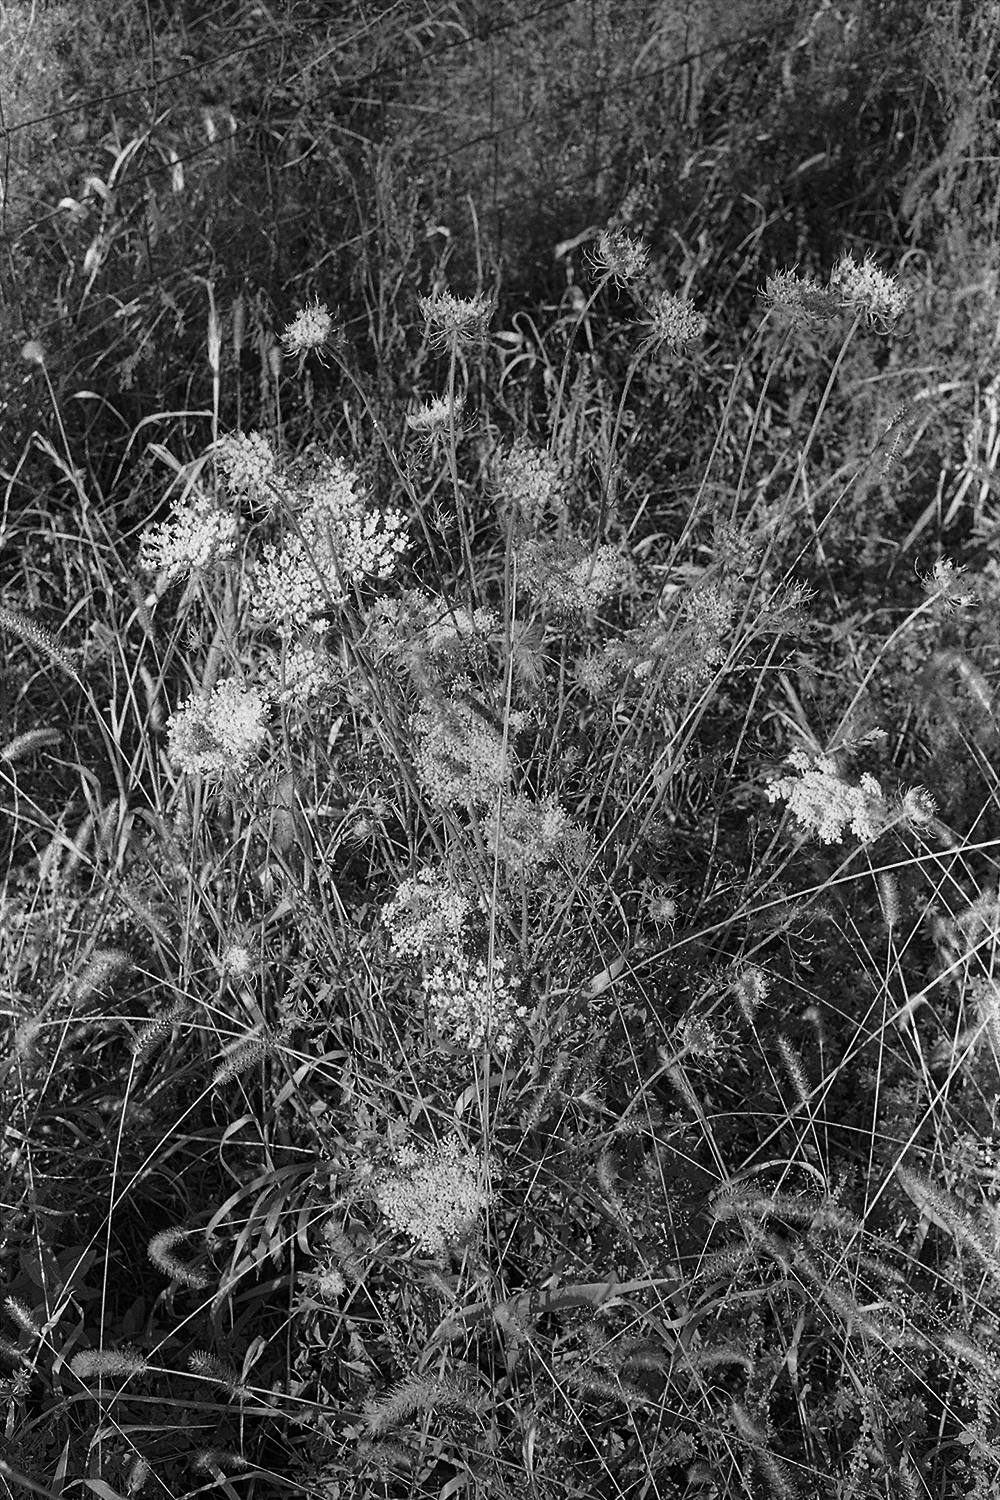 Queen Anne's Lace.  Rappahannock County, Virginia.  2014.